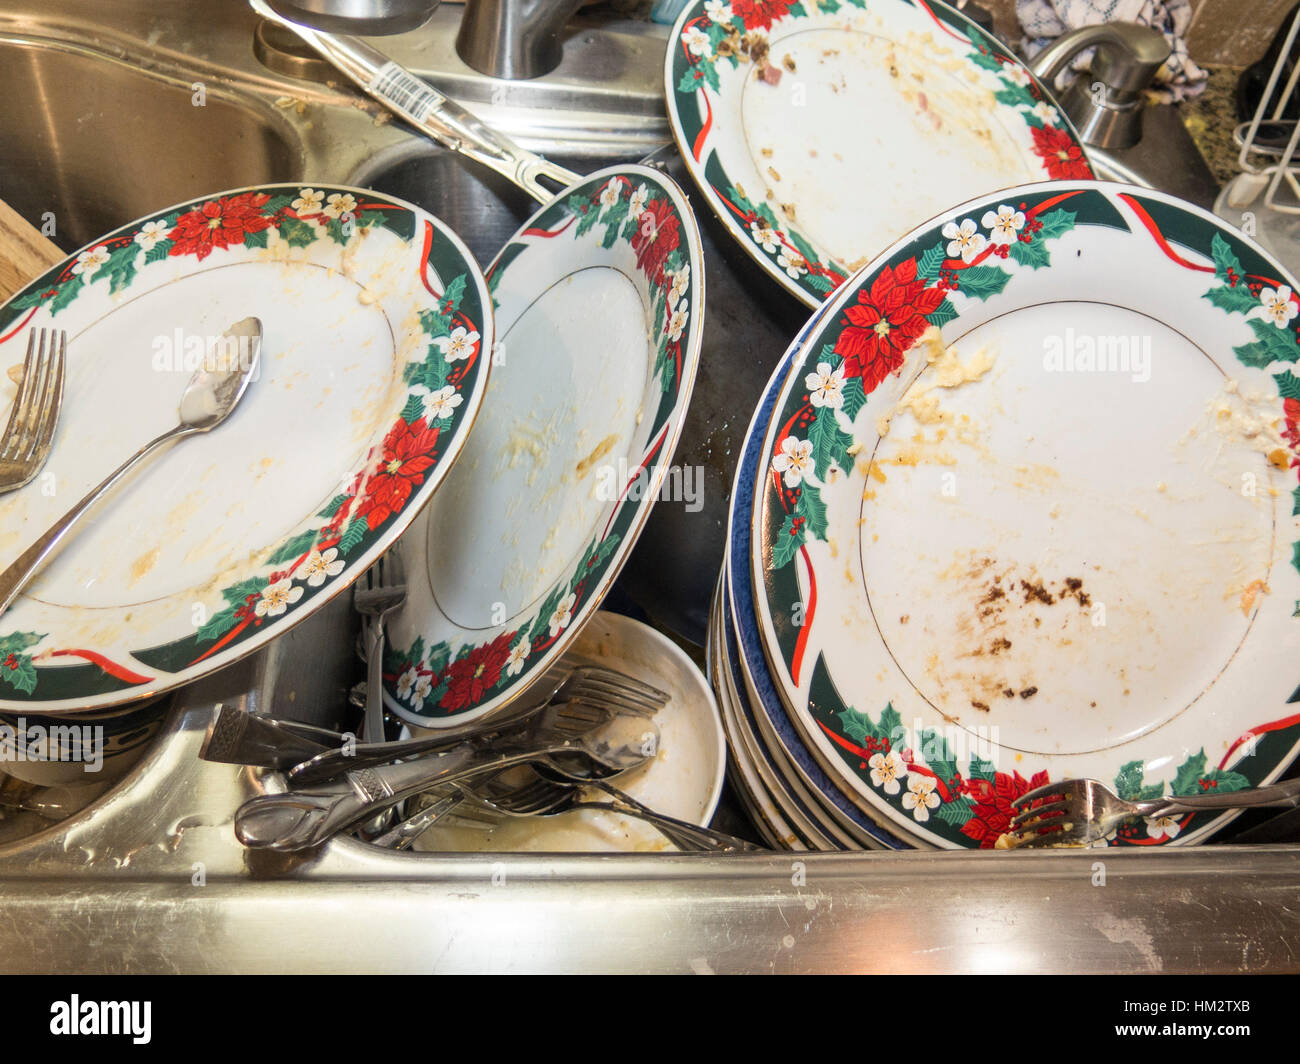 Pile of dirty dishes in sink Stock Photo 132829155  Alamy